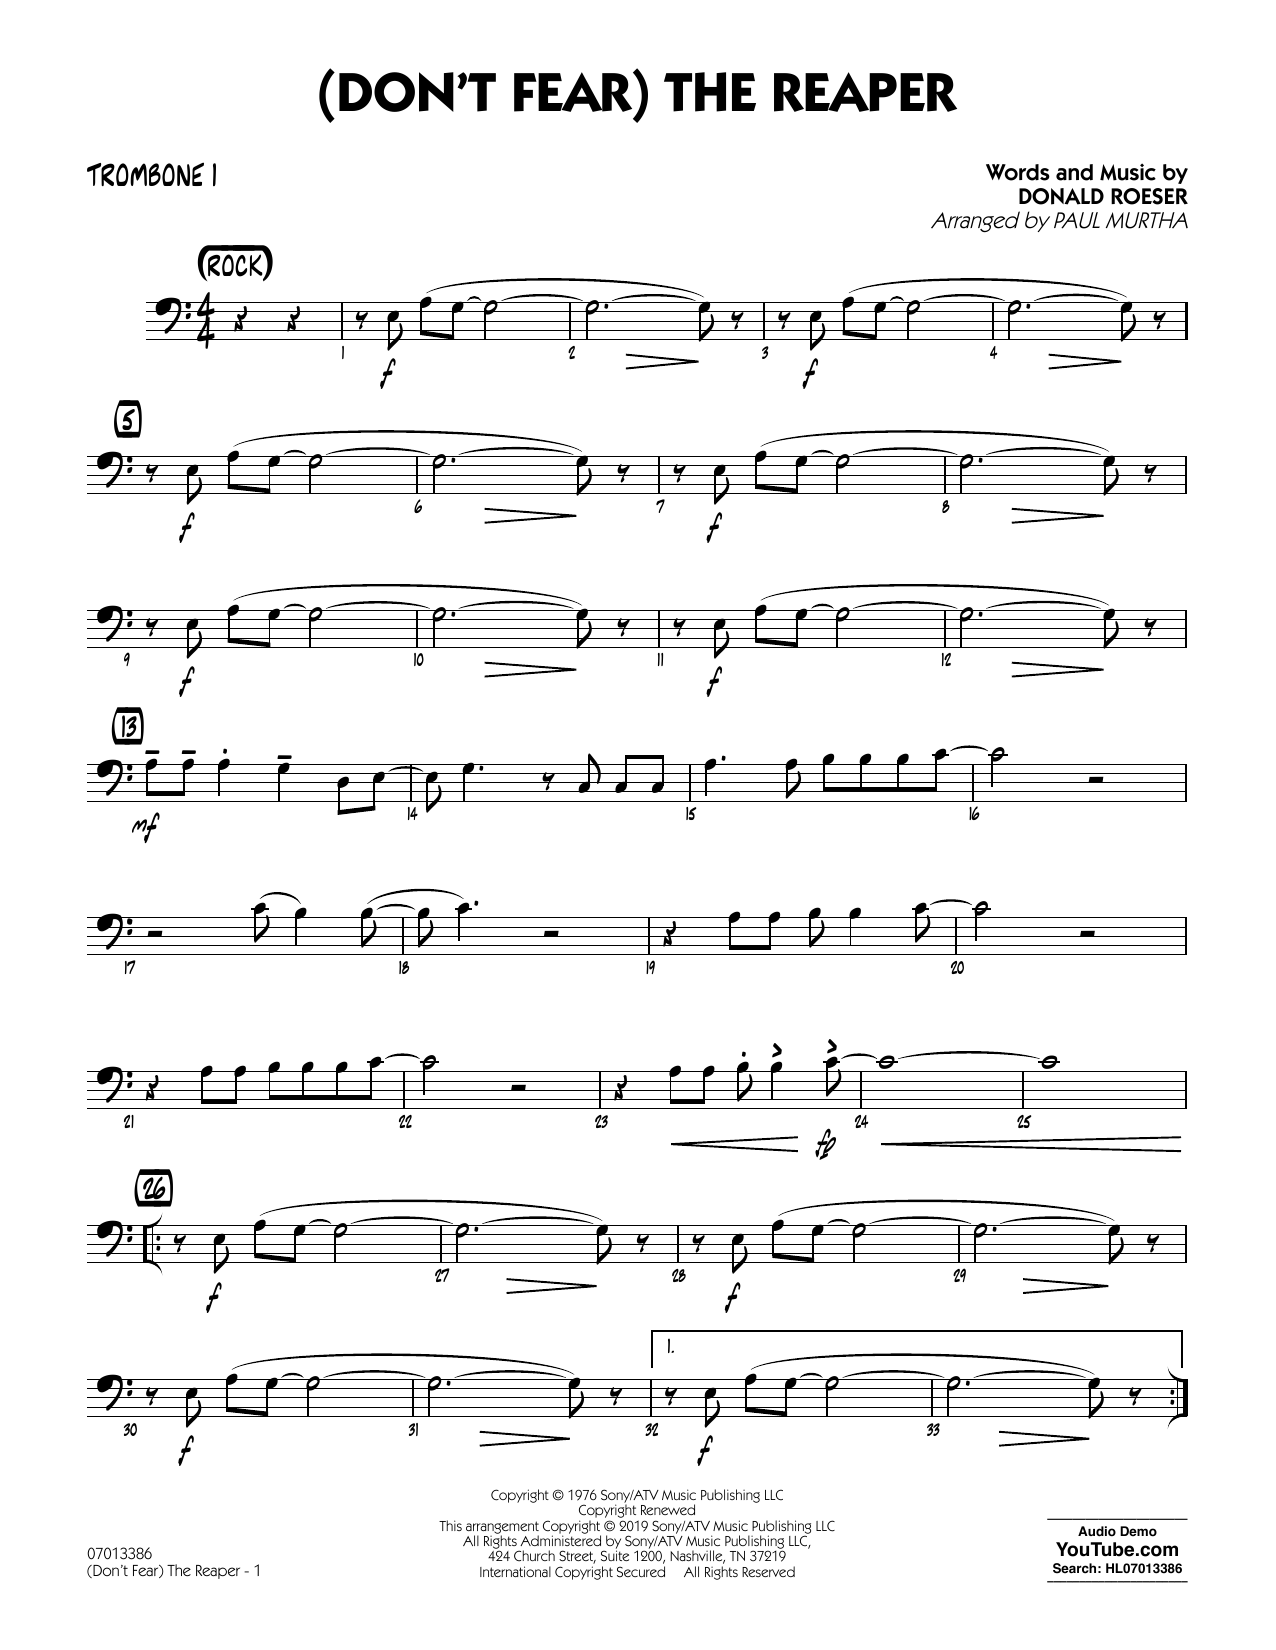 Blue Oyster Cult (Don't Fear) The Reaper (arr. Paul Murtha) - Trombone 1 sheet music preview music notes and score for Jazz Ensemble including 2 page(s)